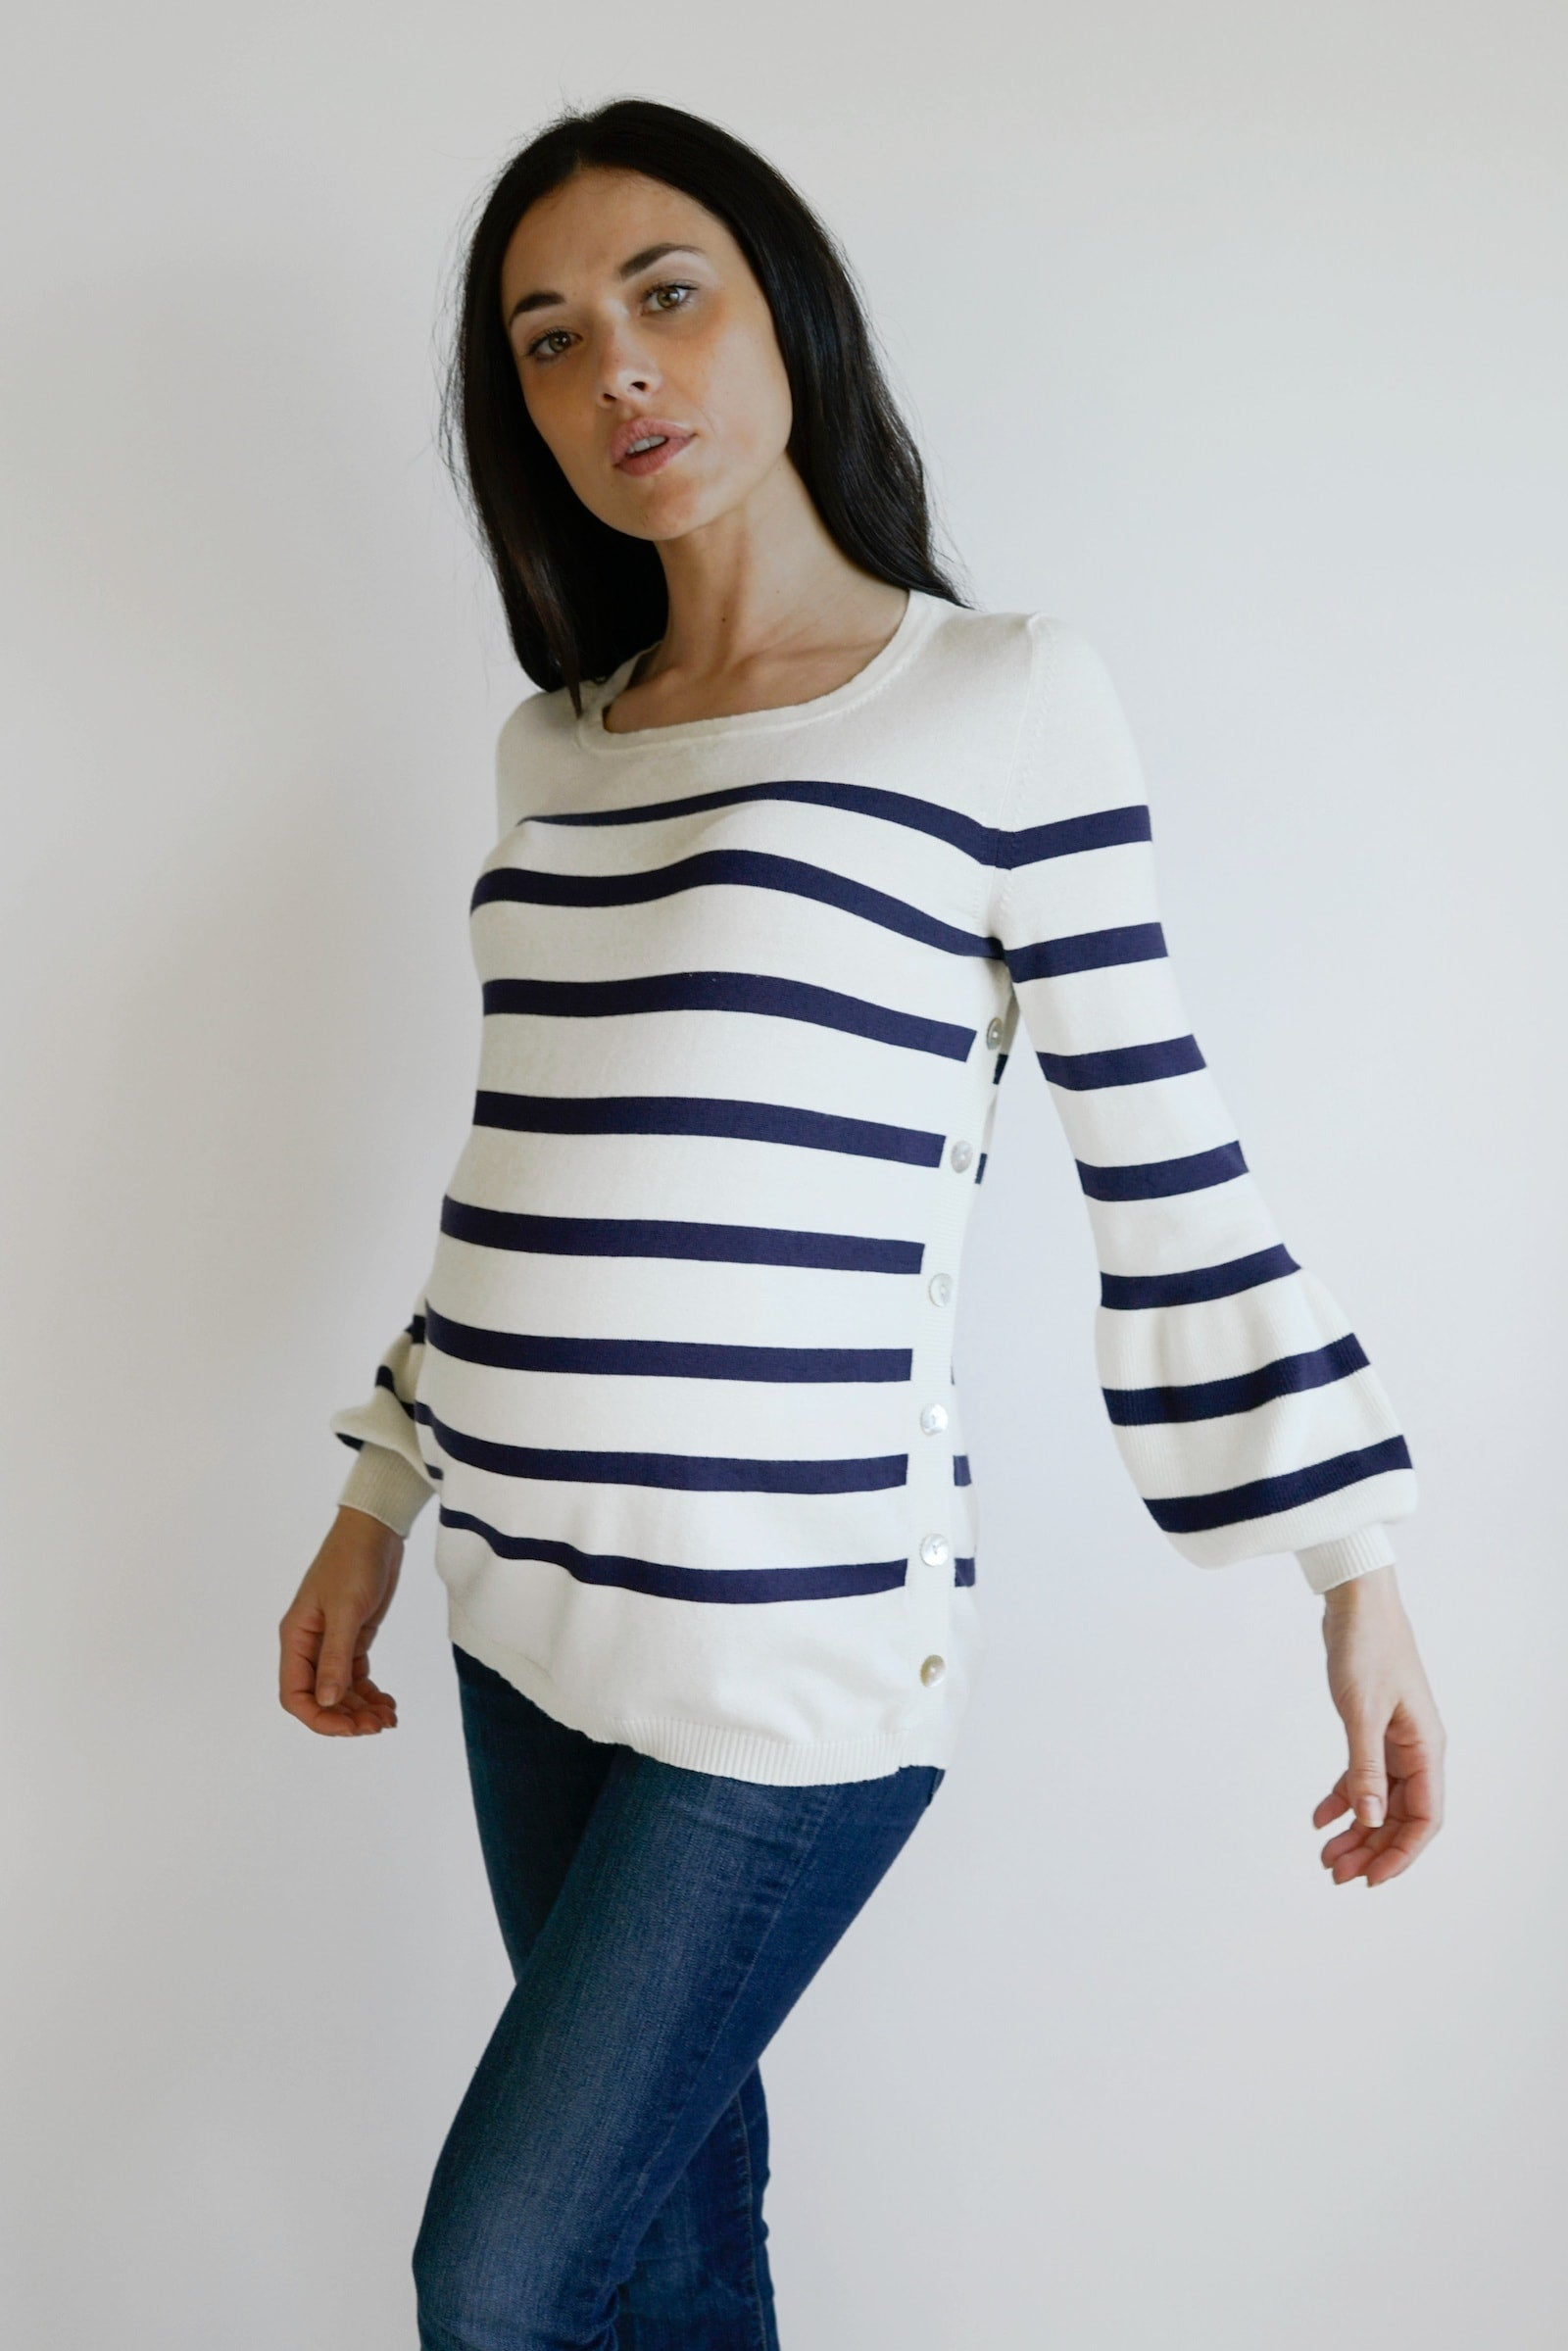 Anita Striped Nursing Maternity Sweater - ivory striped